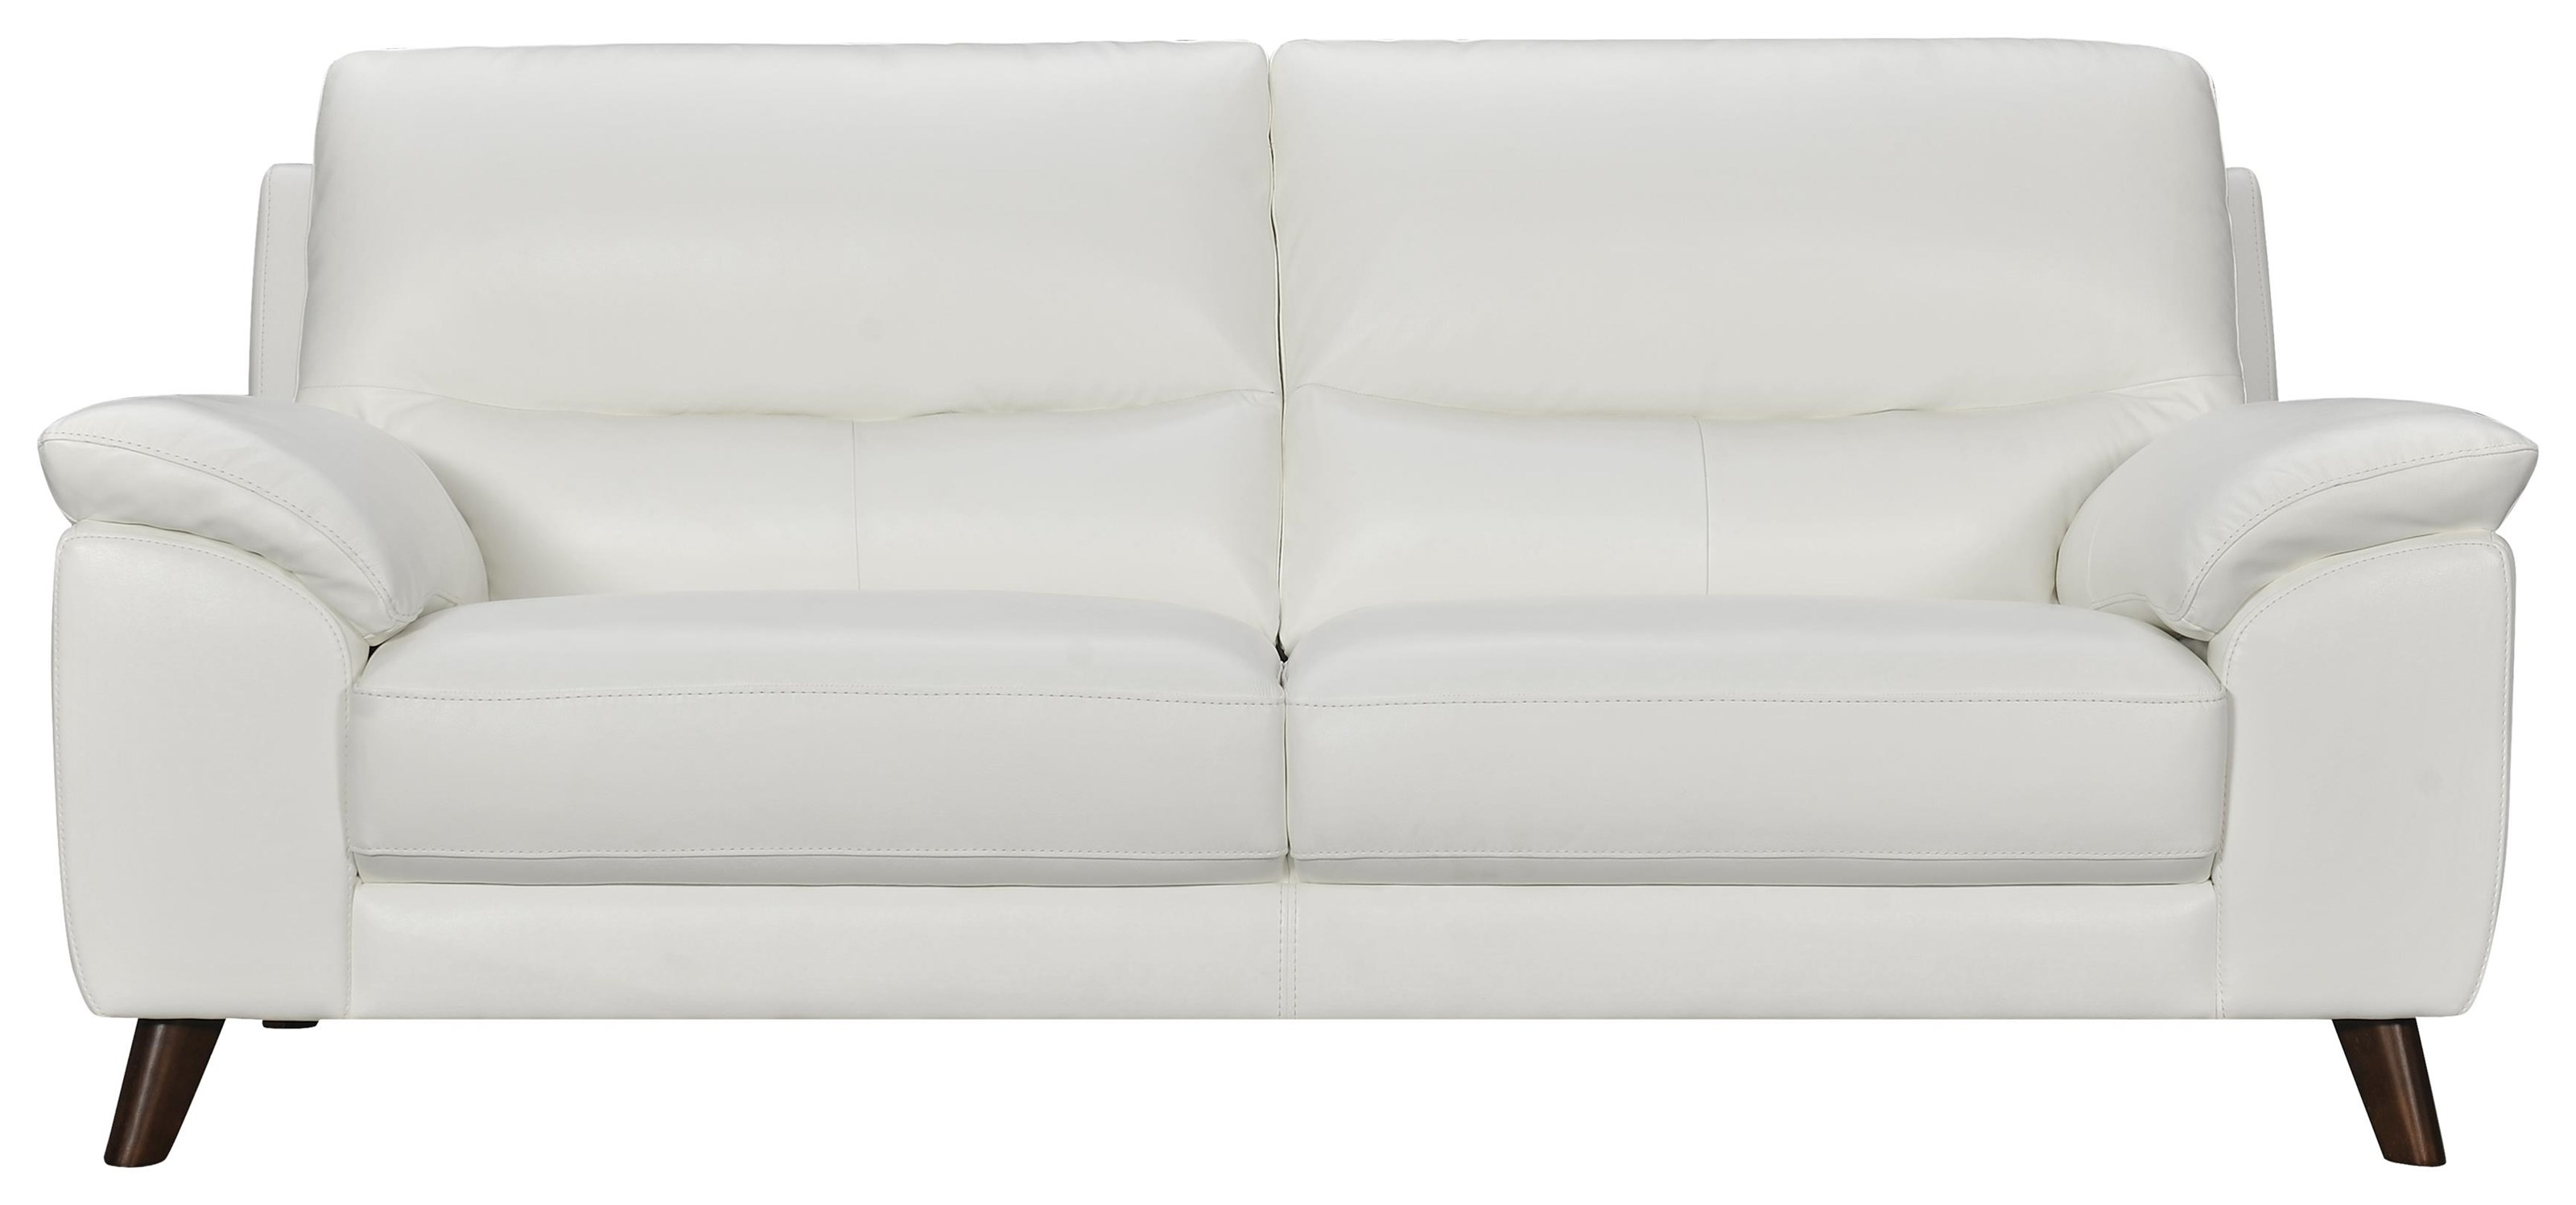 Frankie Sofa by Violino at Red Knot